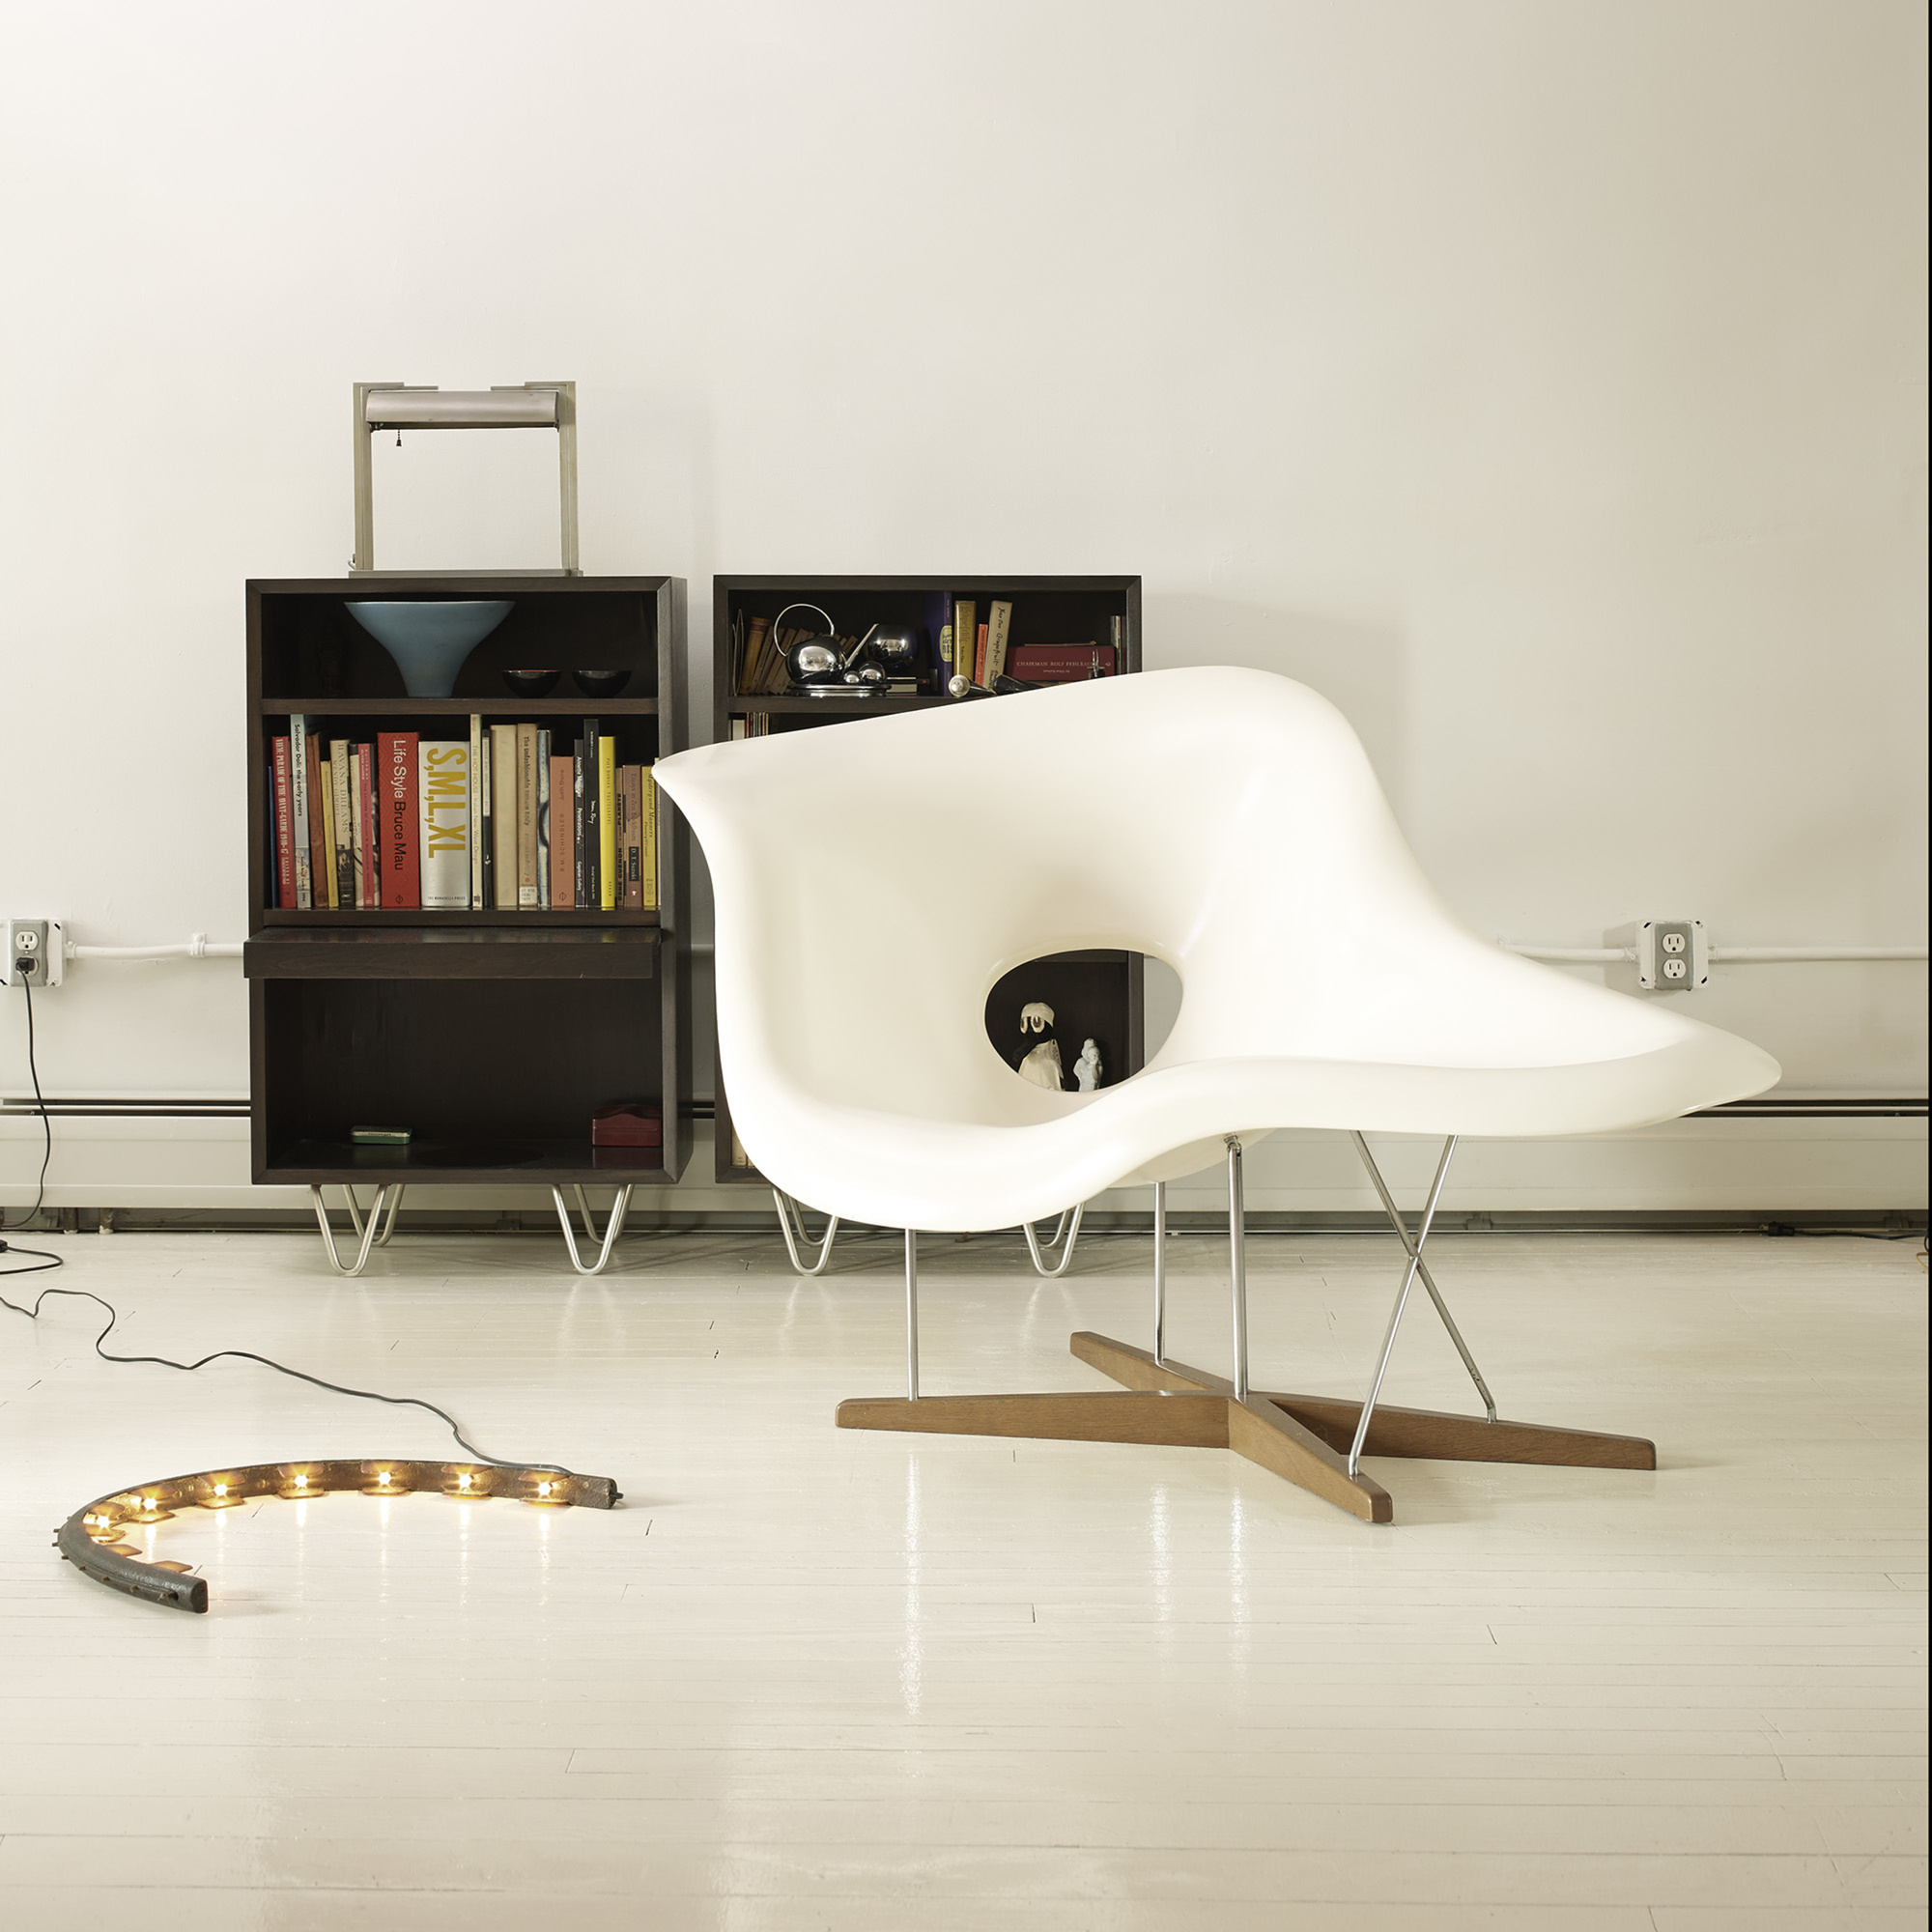 charles eames chaise interesting la chaise charles eames with charles eames chaise simple. Black Bedroom Furniture Sets. Home Design Ideas